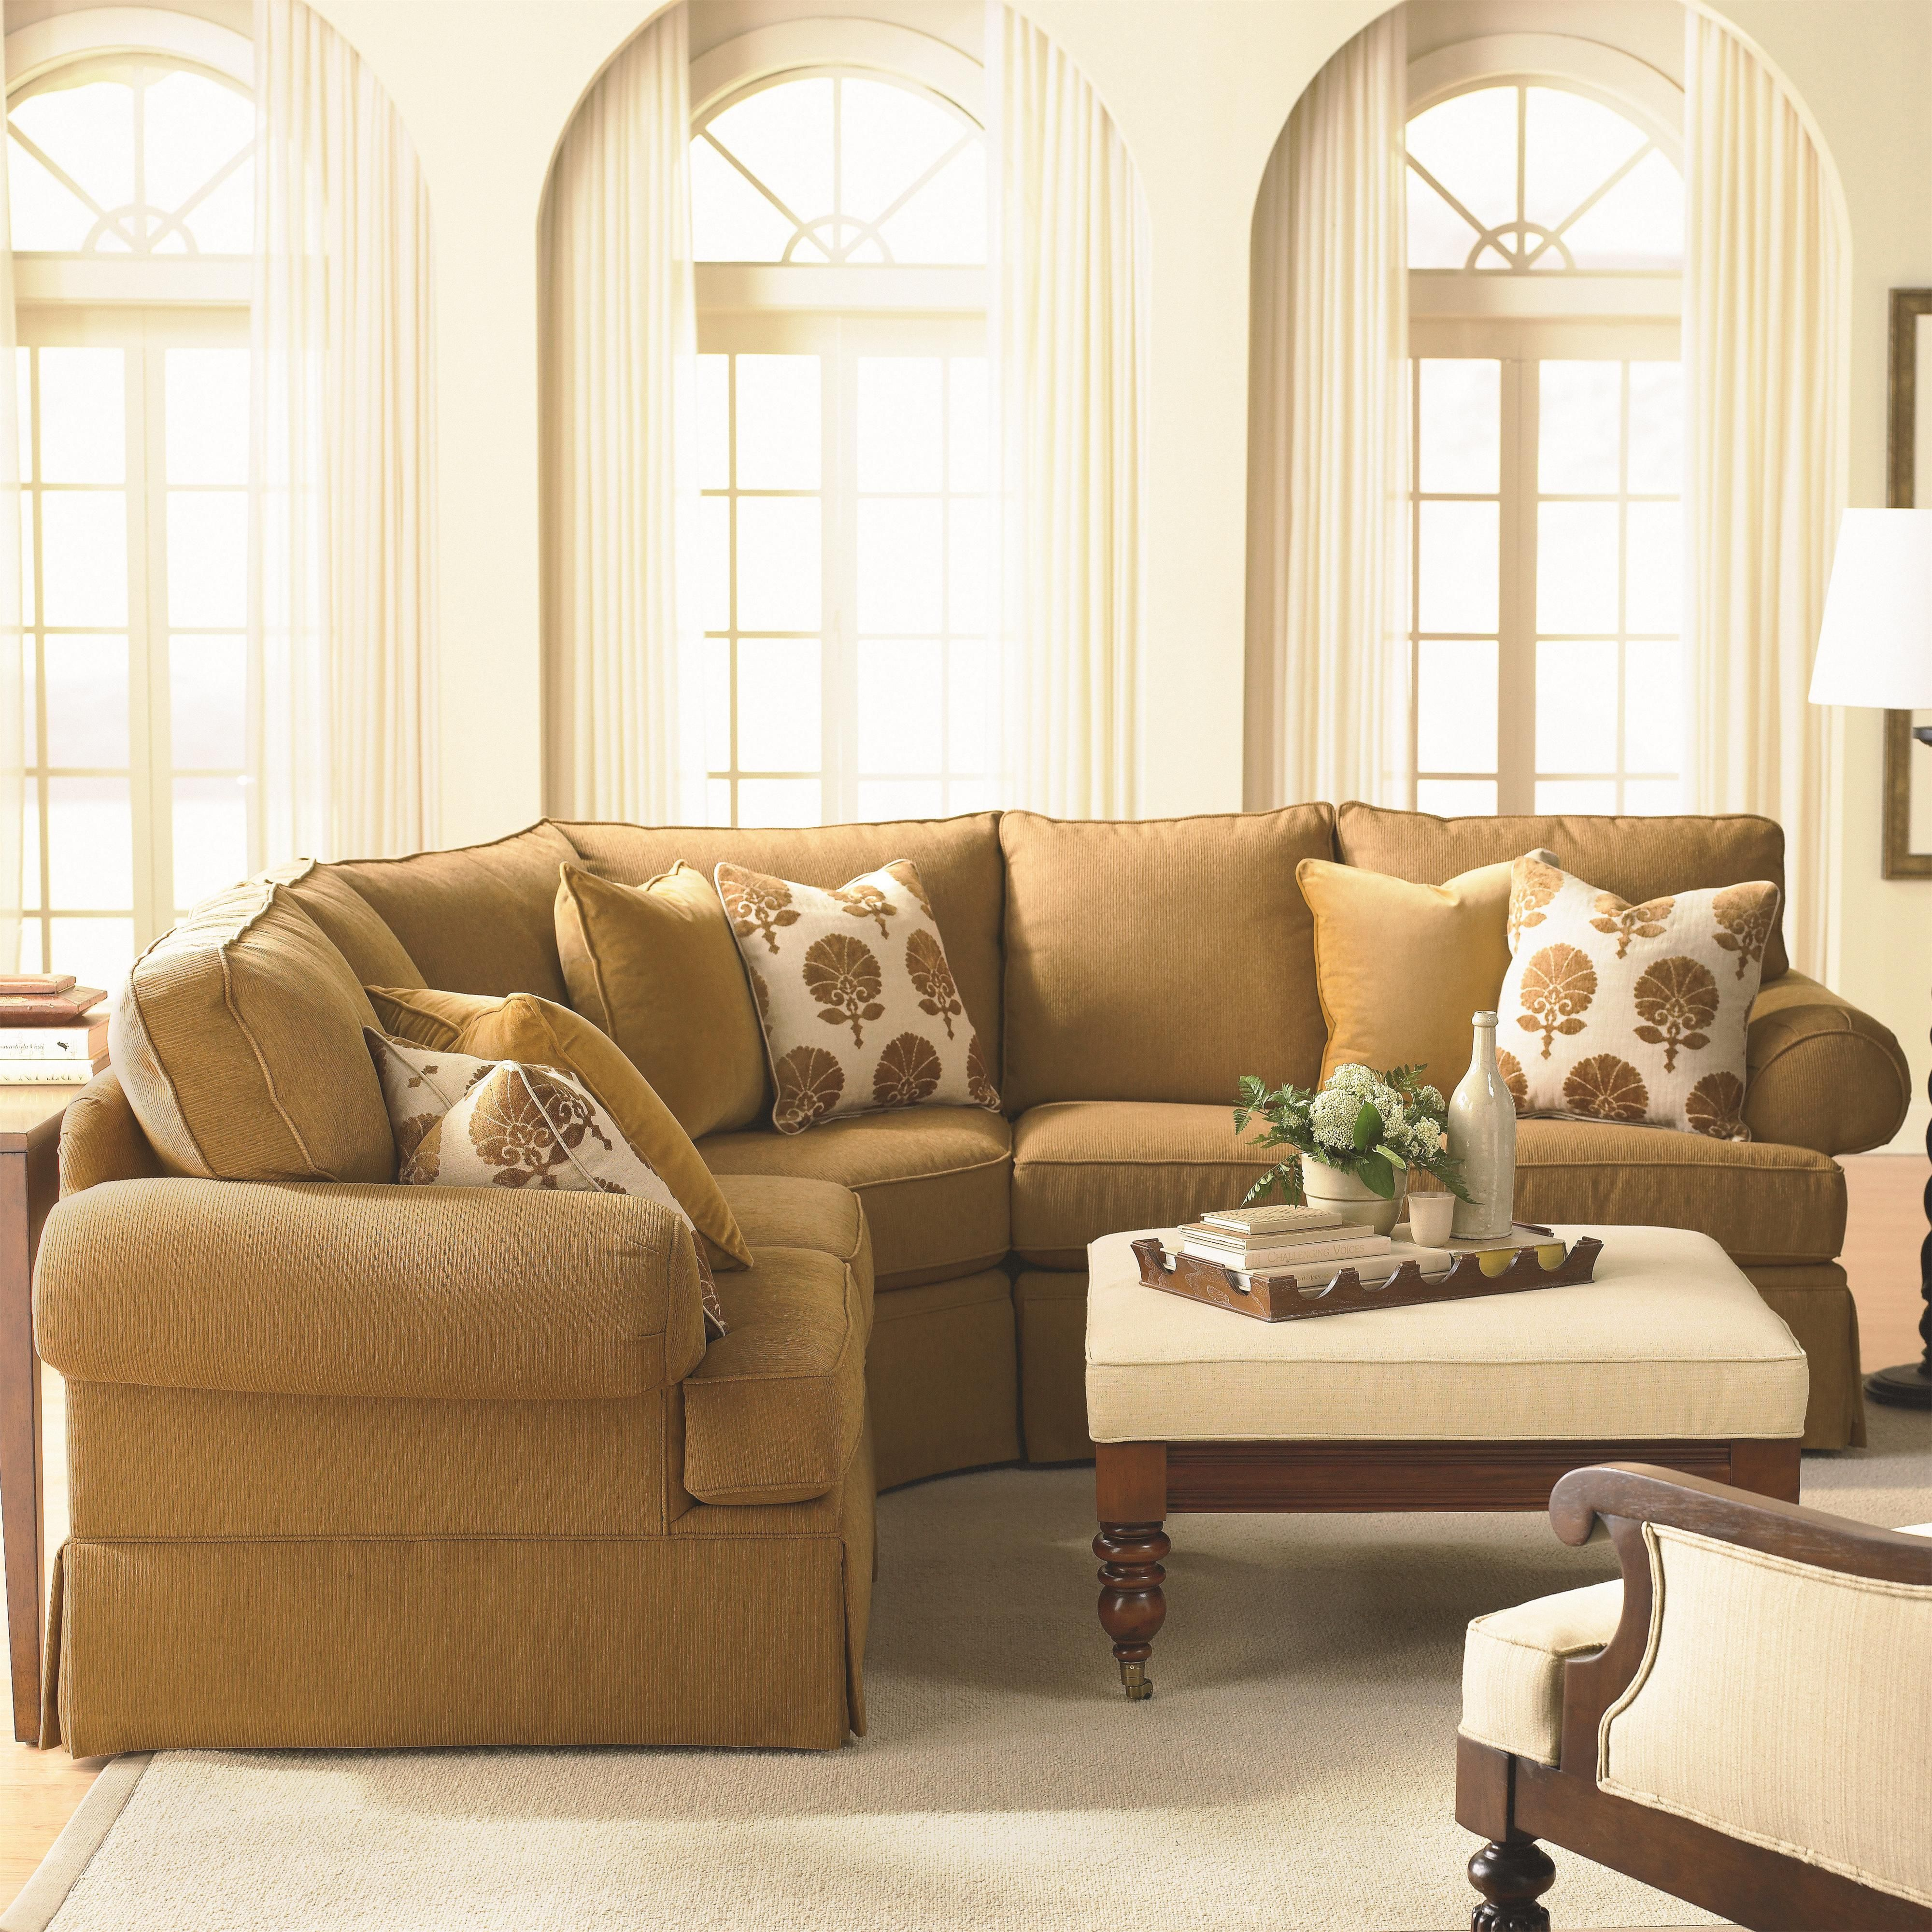 Manor Custom 3 Pc. Sectional By